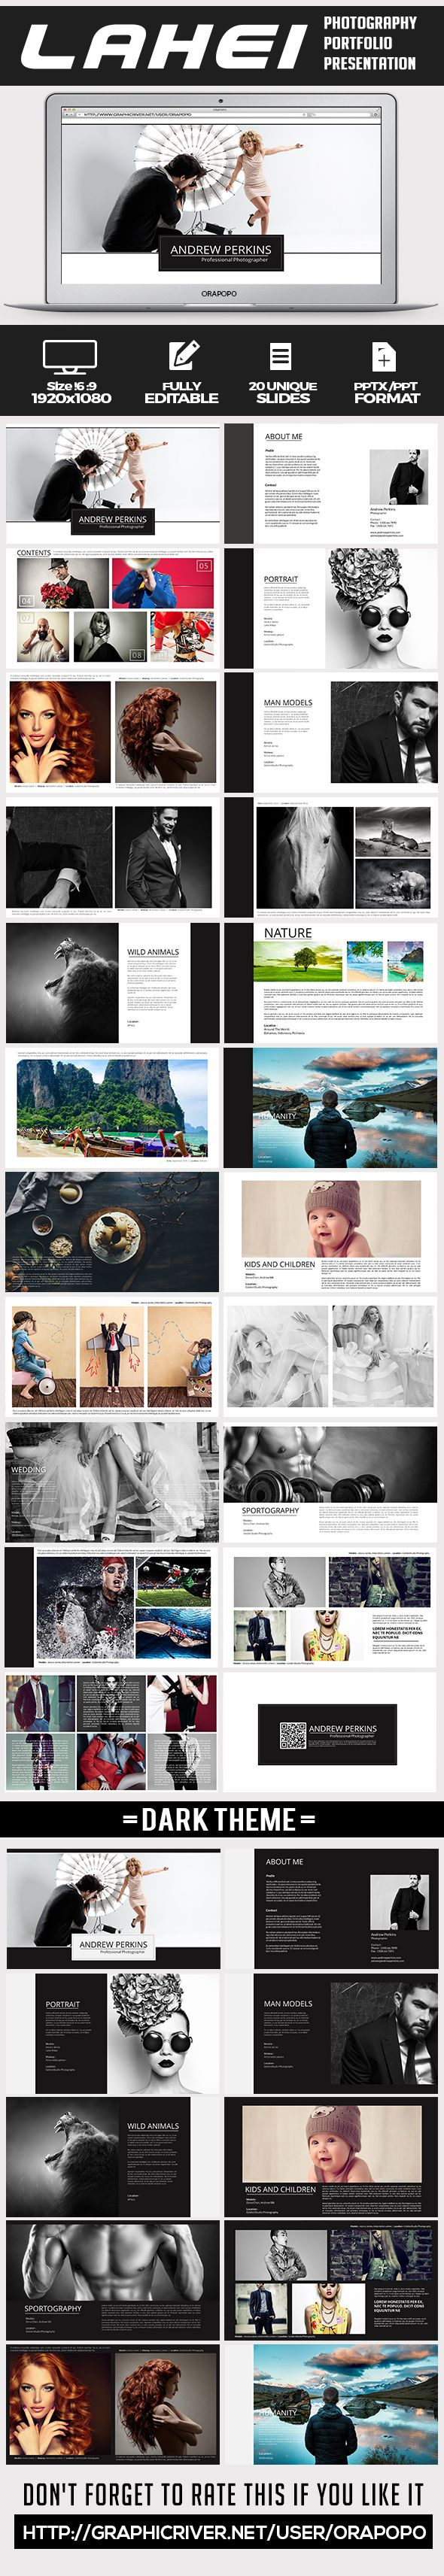 Lahei photography portfolio presentation lahei photography portfolio presentation creative powerpoint templates download here https toneelgroepblik Images